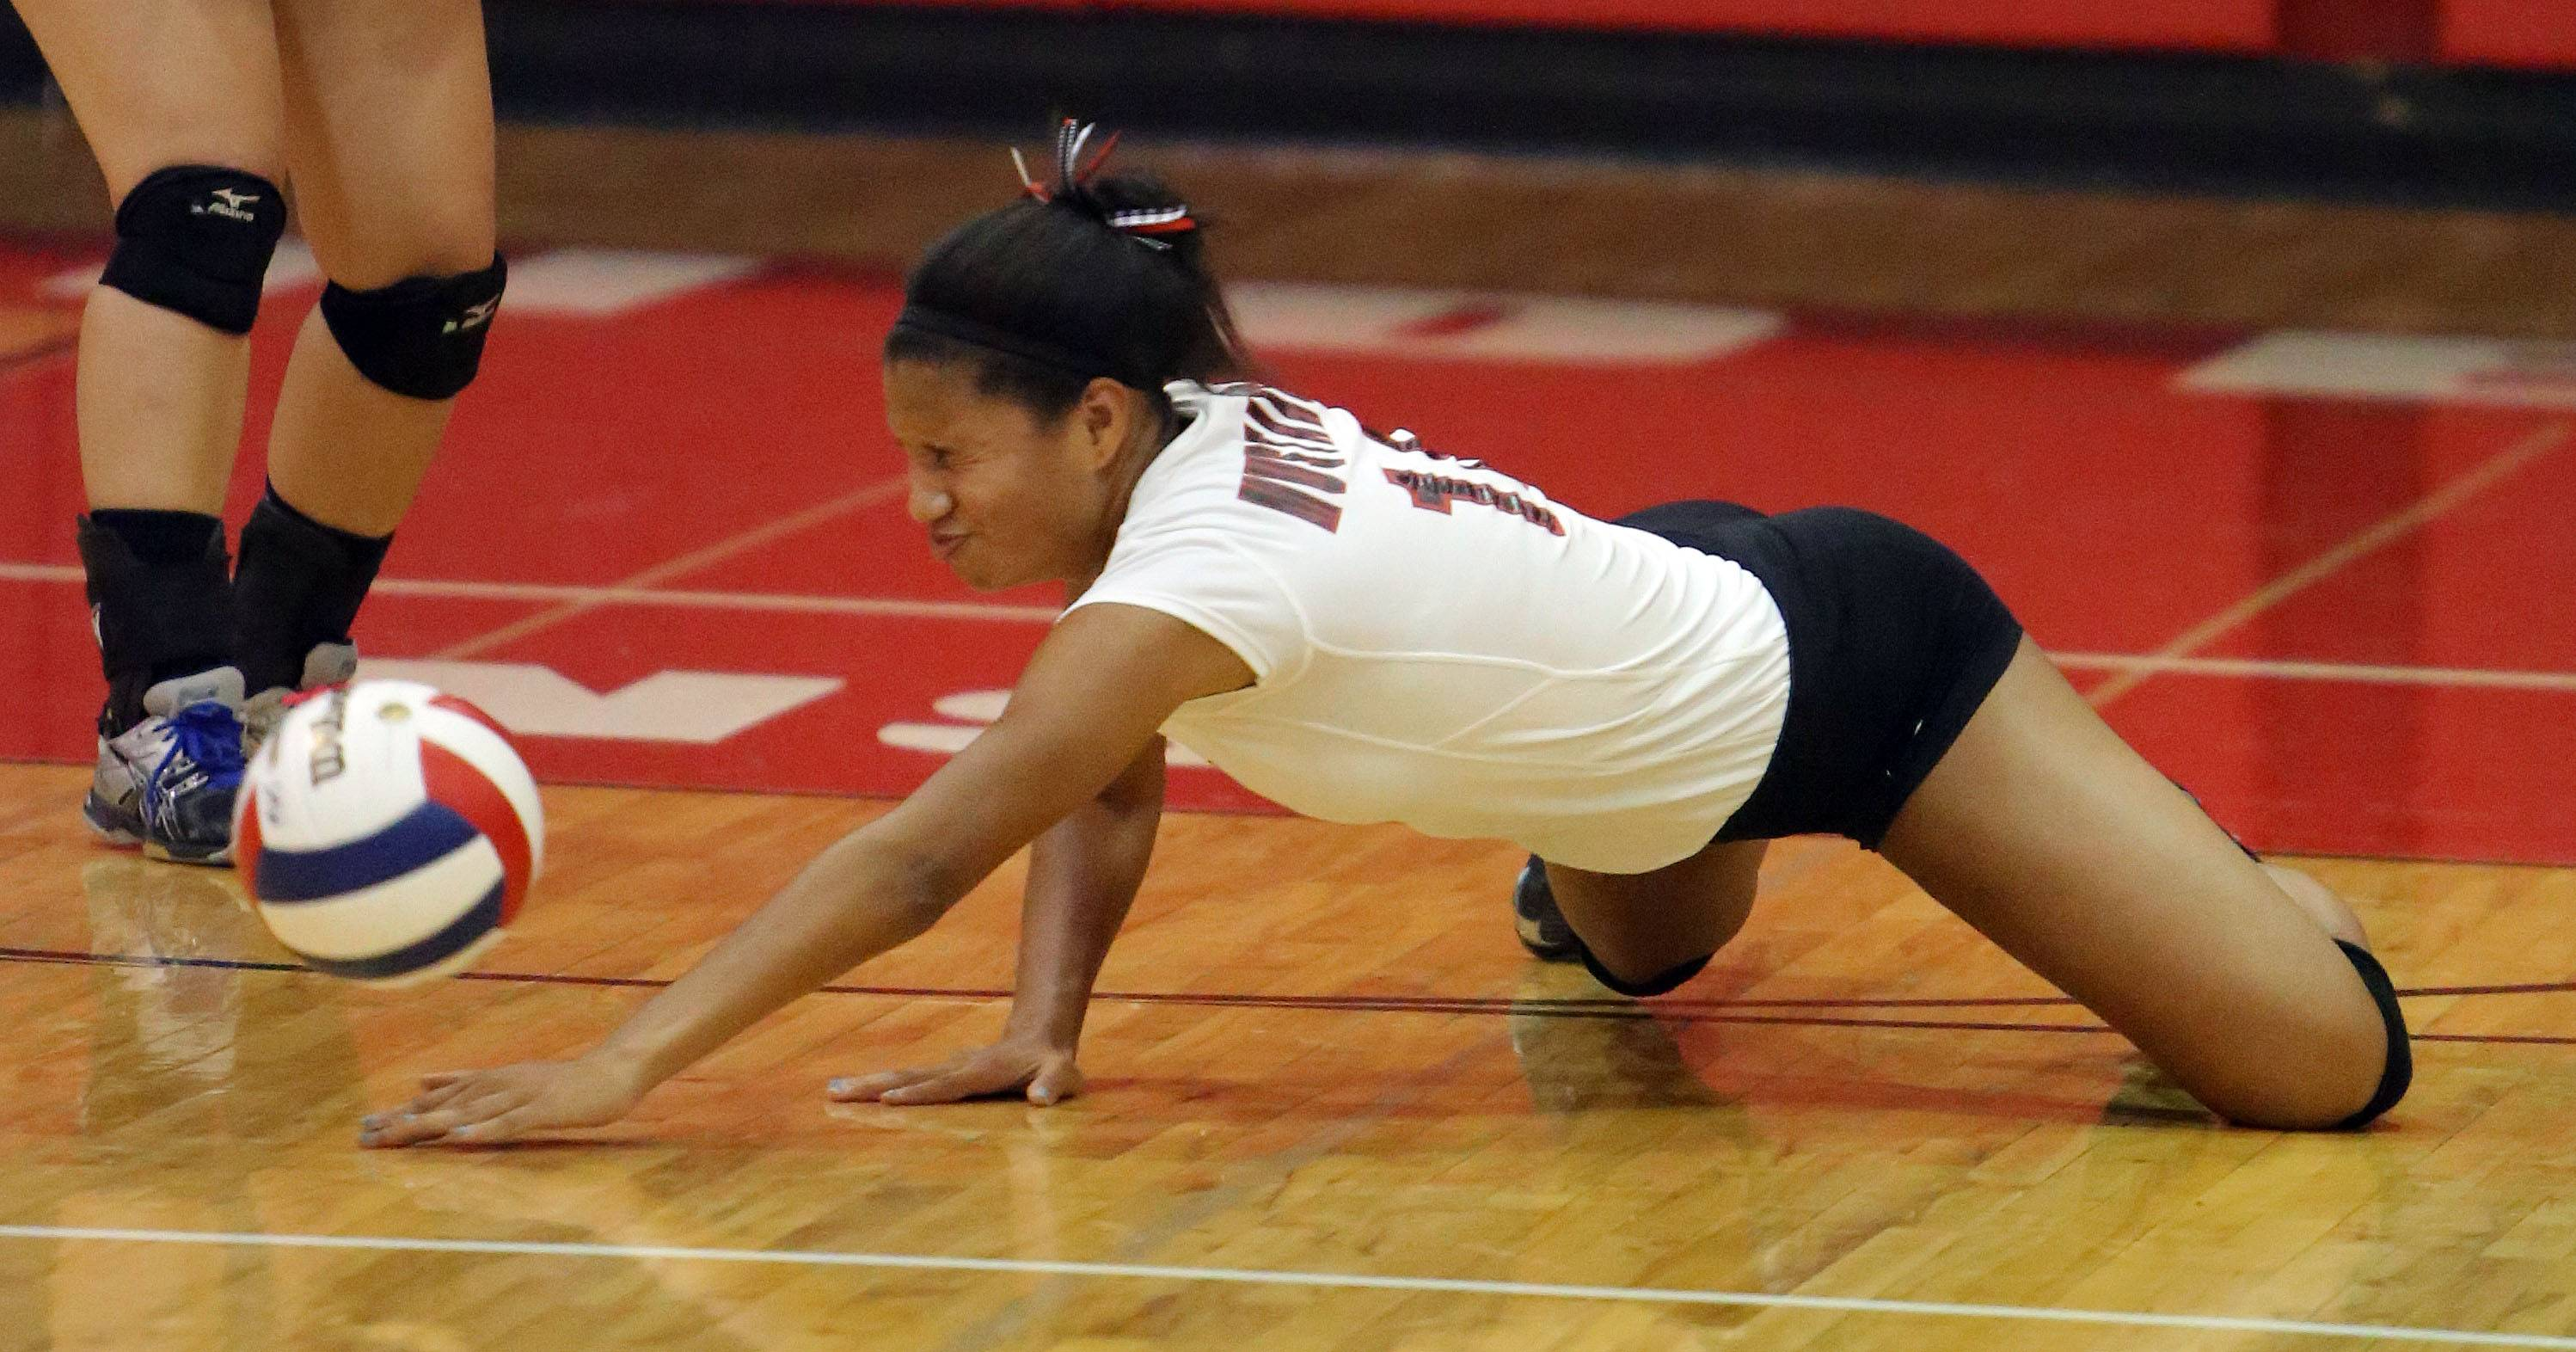 Mundelein's Yasmeen Johnson dives for a ball during their game against Wauconda on Tuesday night at Mundelein.